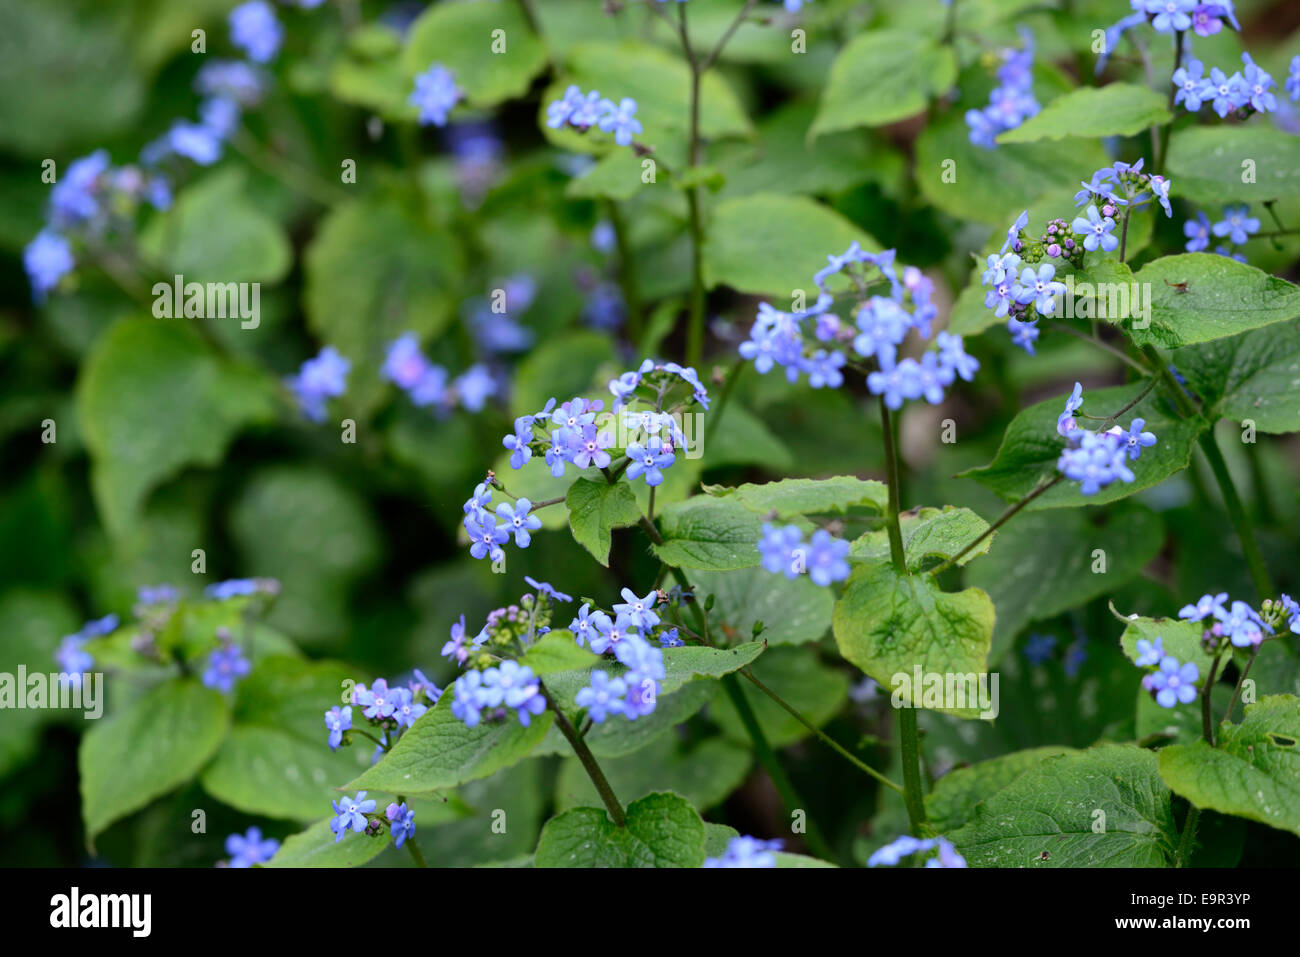 Flowers that bloom in shade - Omphalodes Verna Blue Eyed Mary Flower Flowering Flowers Groundcover Shade Bloom Blooming Blooms Blossom Blossoms Rm Floral